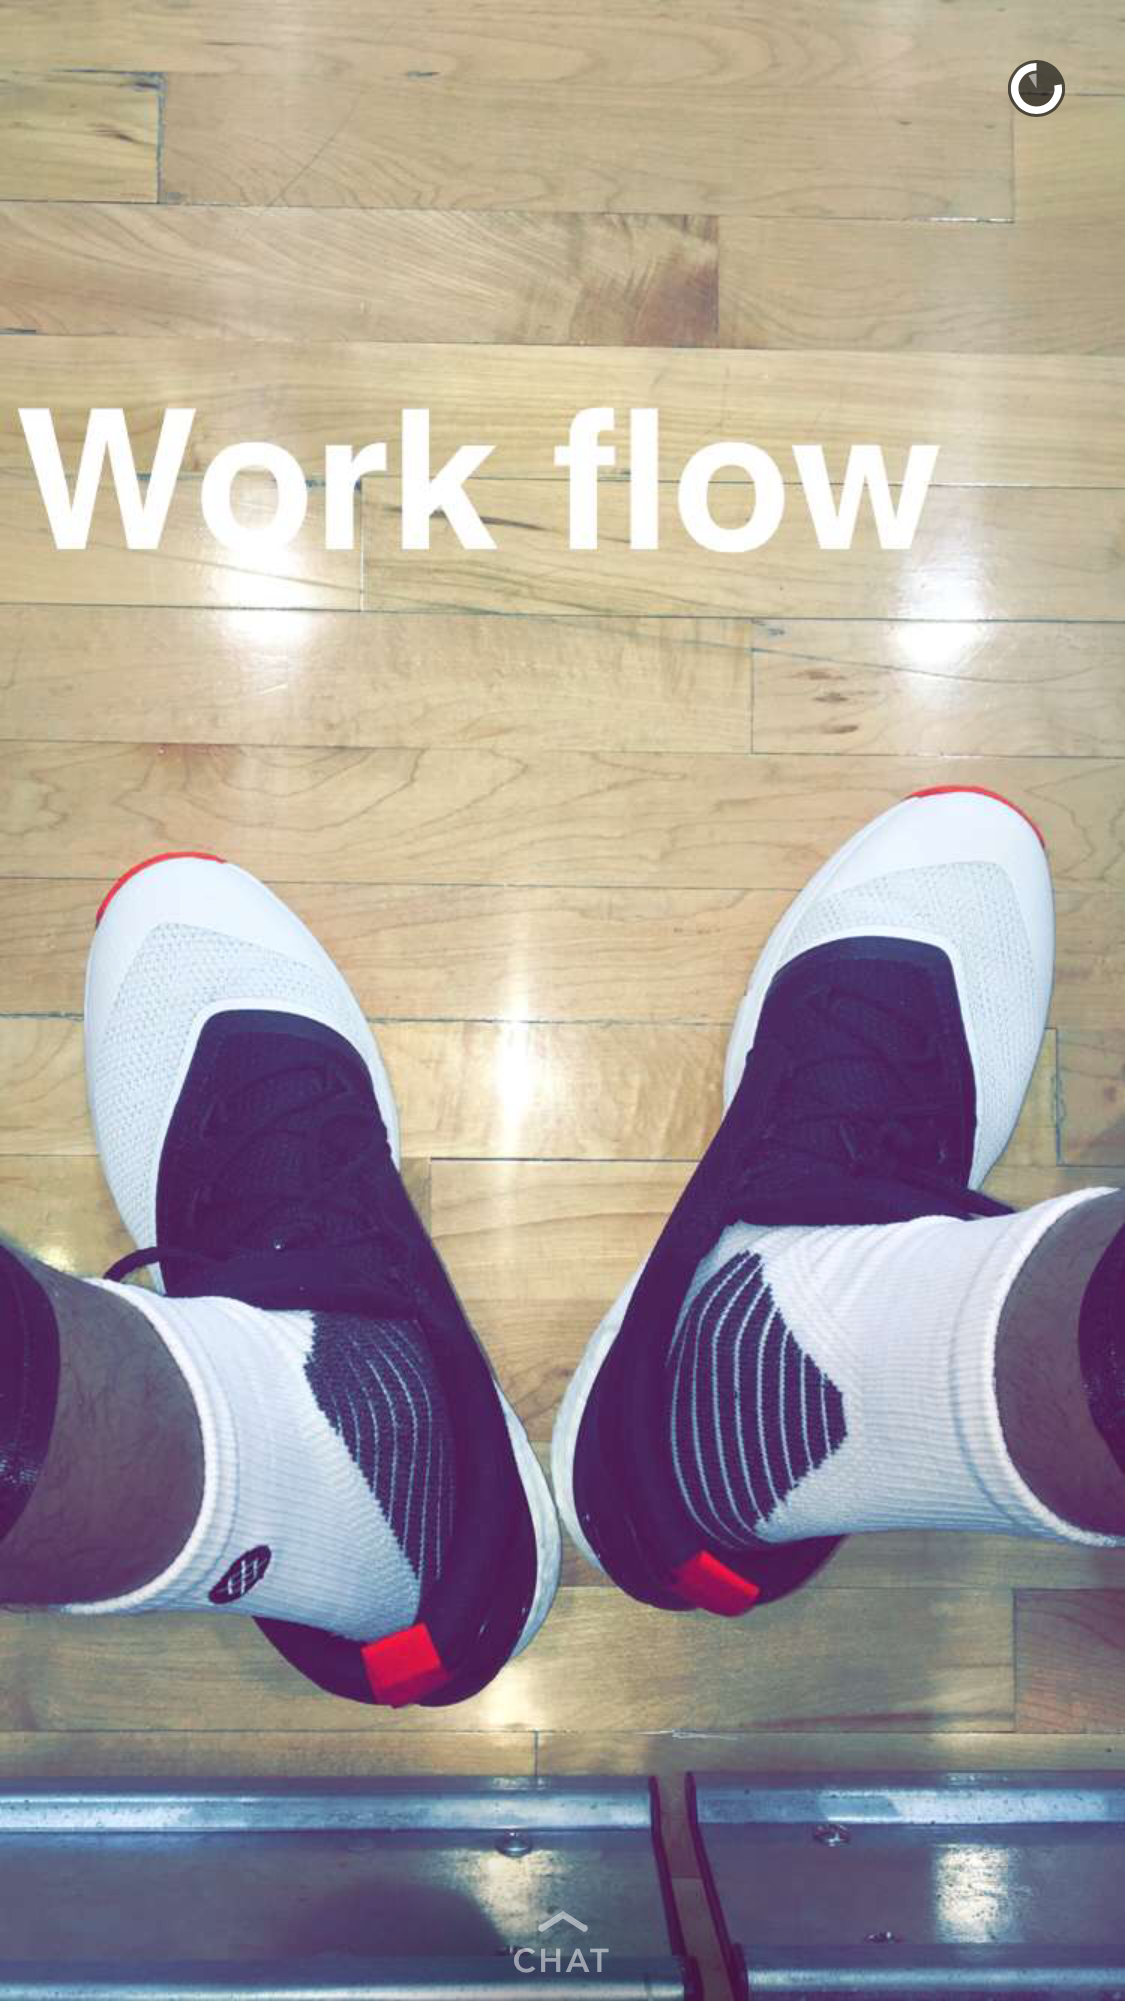 Oubre Snapchat Takeover